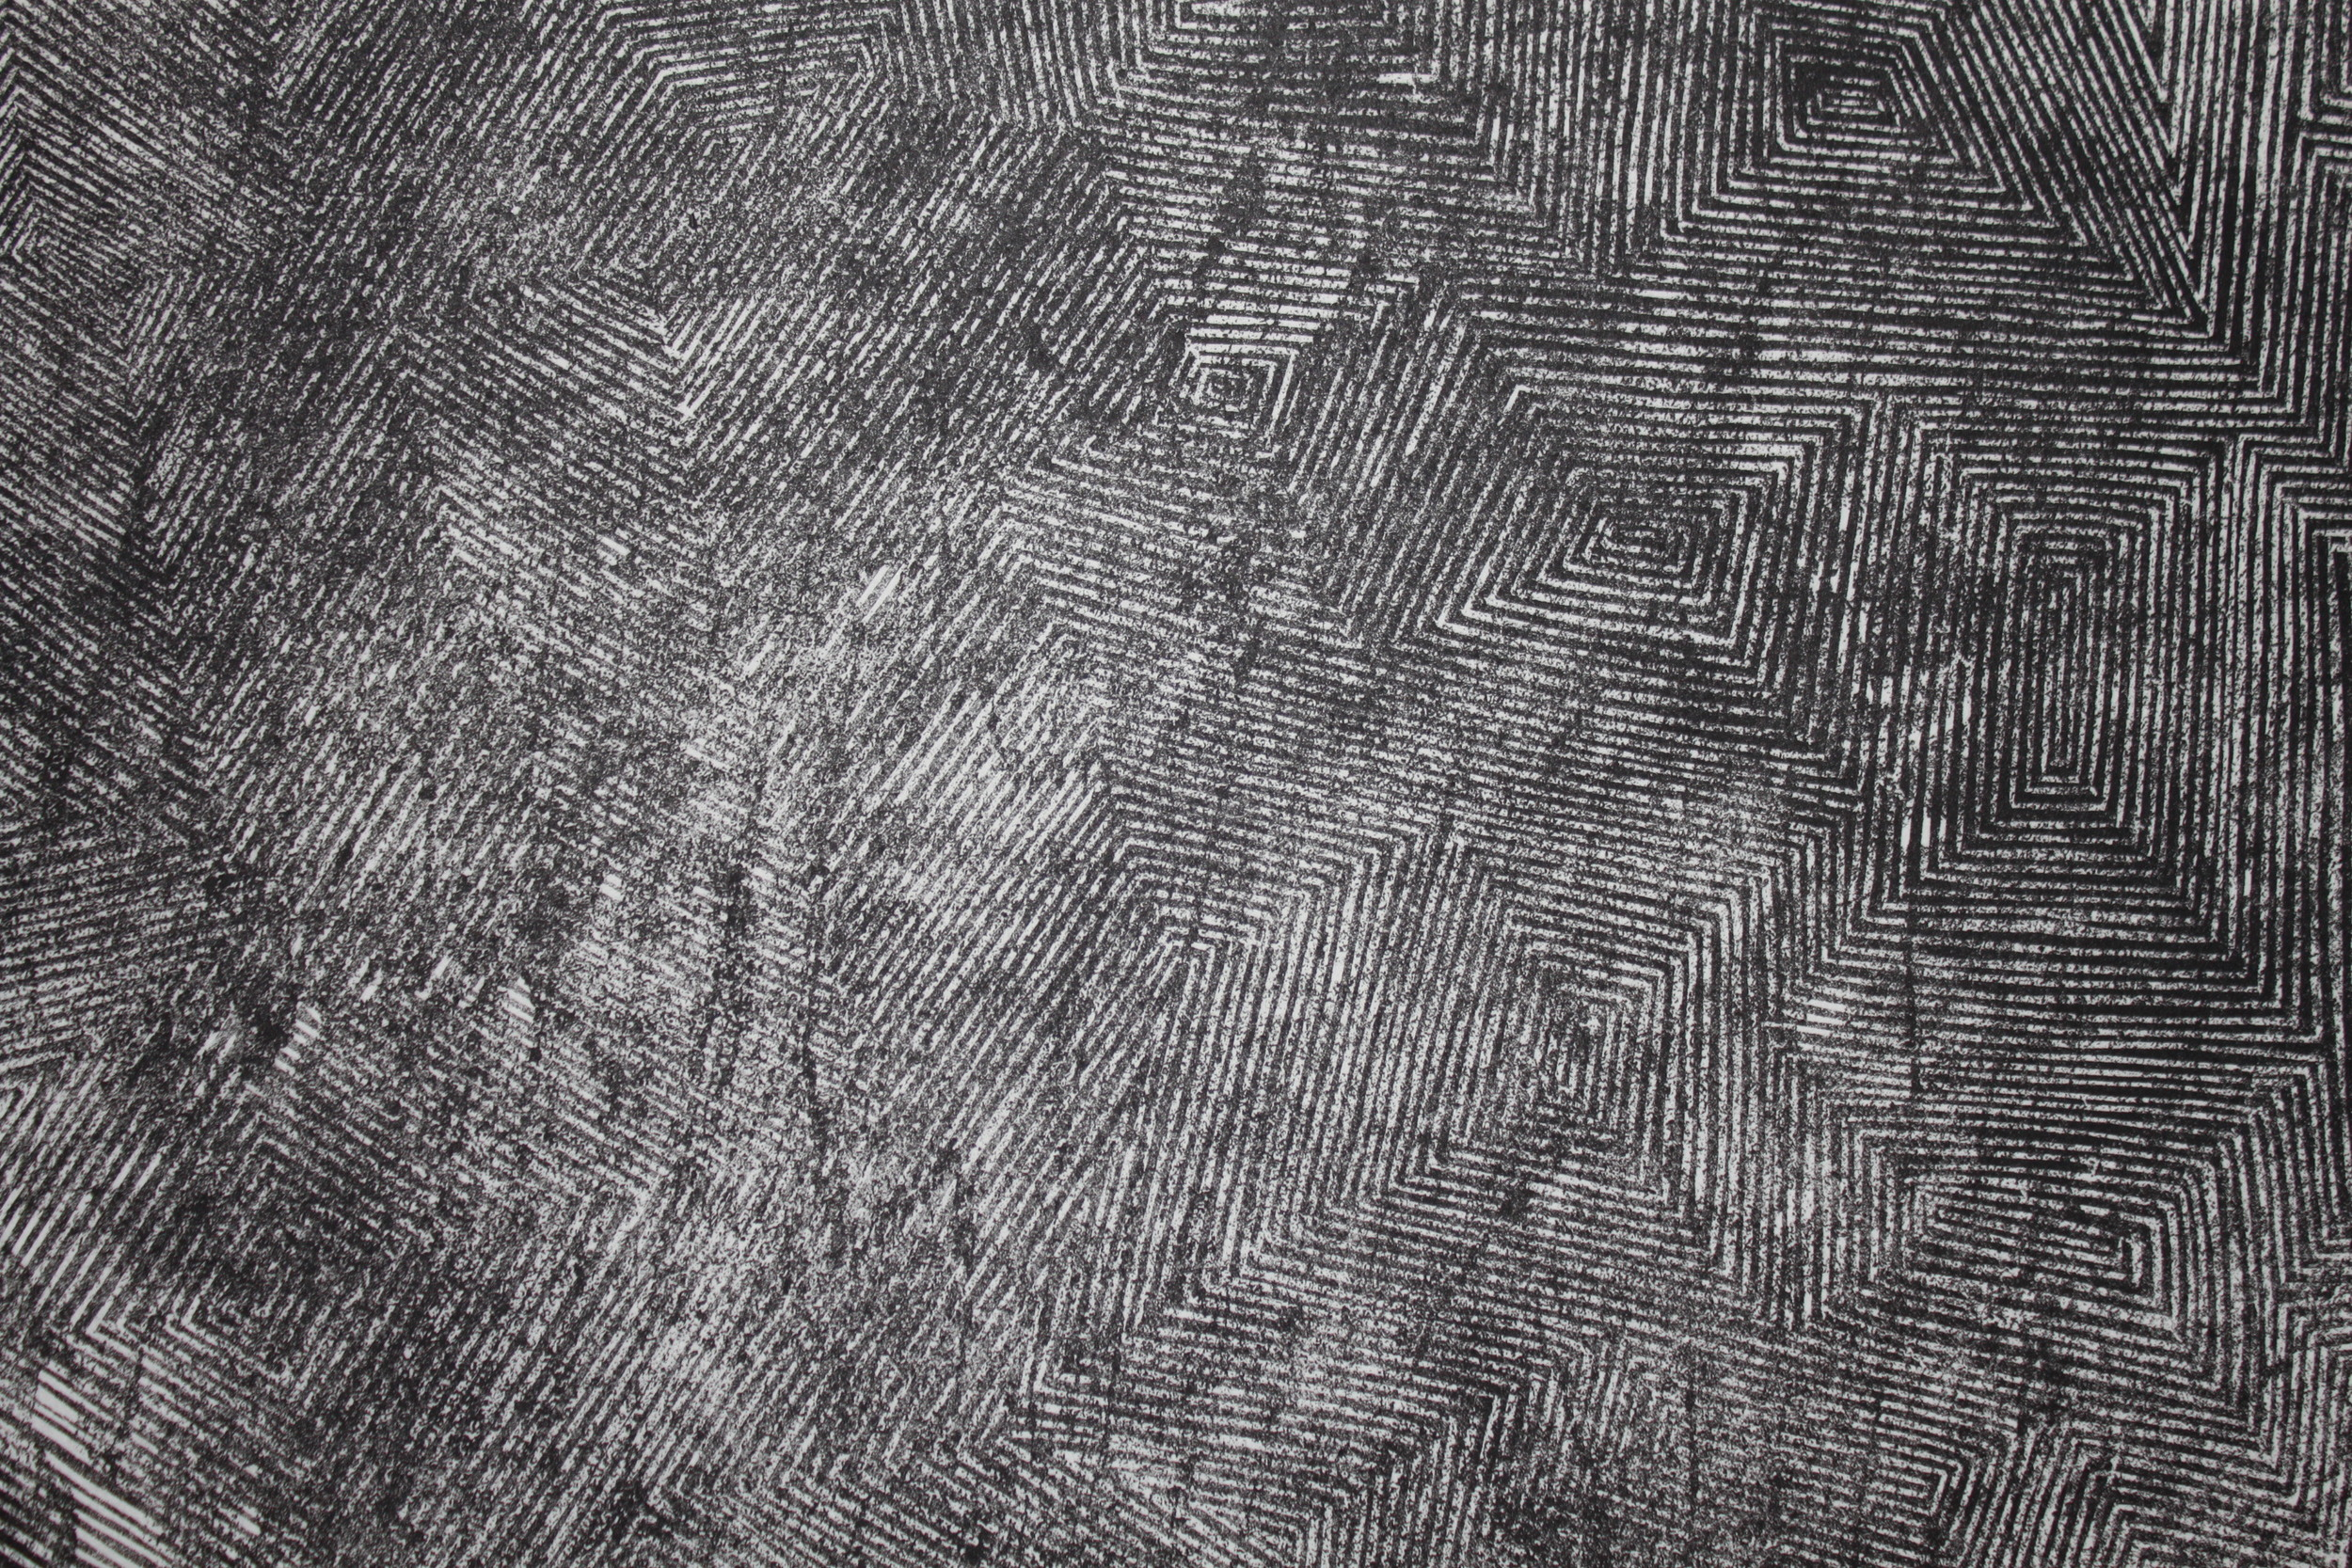 Locust 1 (detail). 2013. woodcut and concrete block relief on Japanese paper.39 in x 26 in